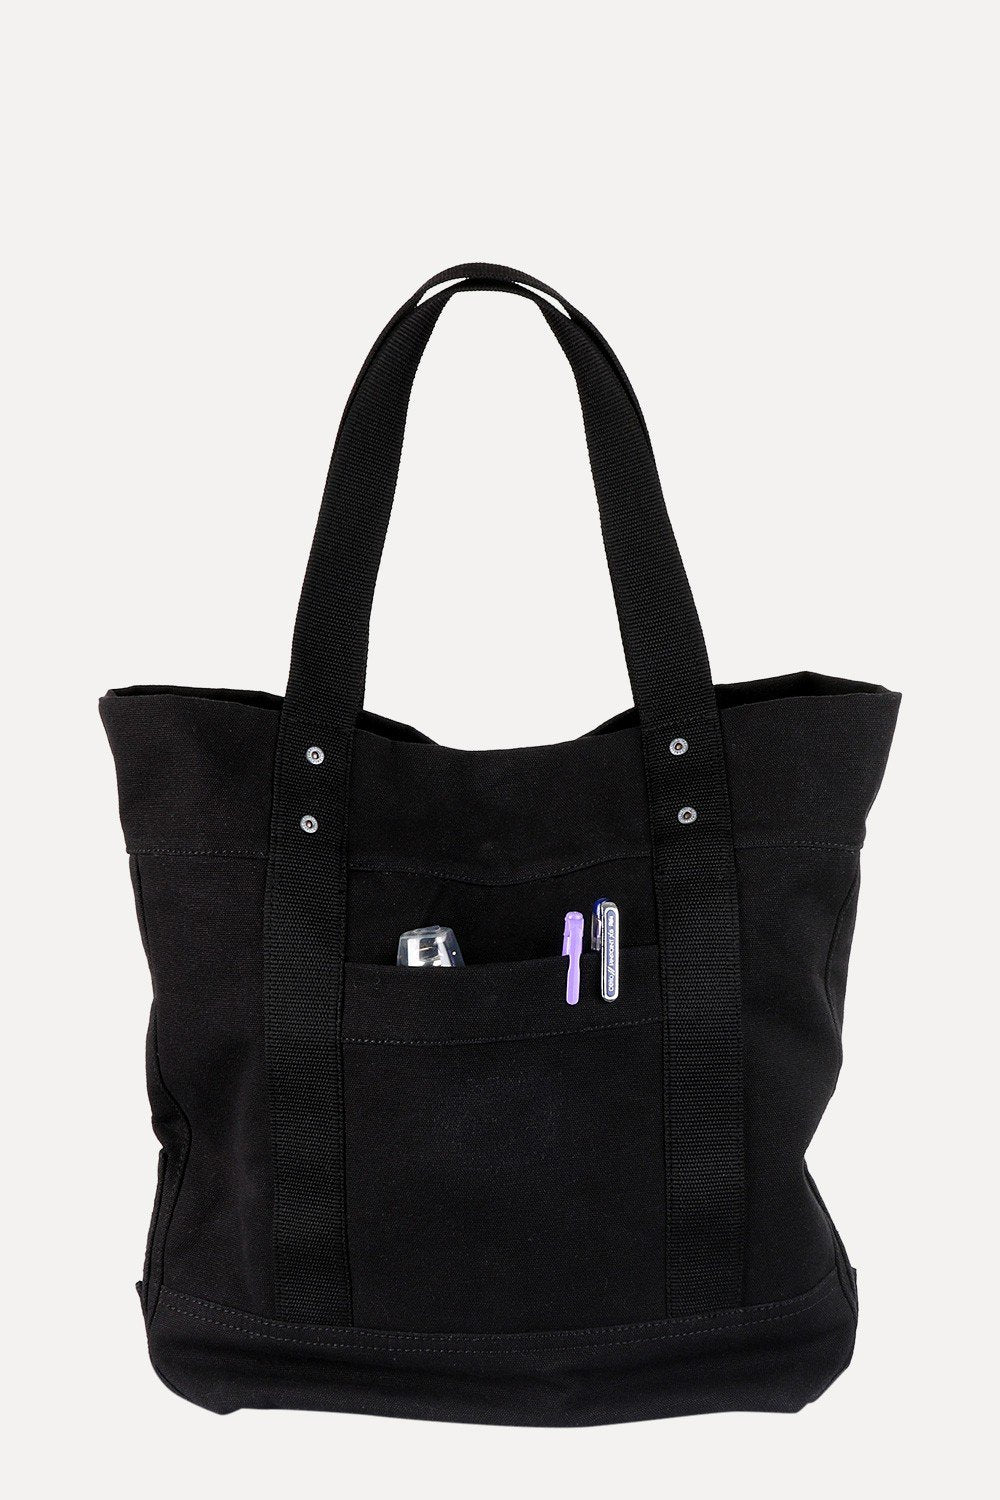 Buy Online Throw In Black Canvas Tote Bag for Men at Zobello f7c1b8f54c6e6